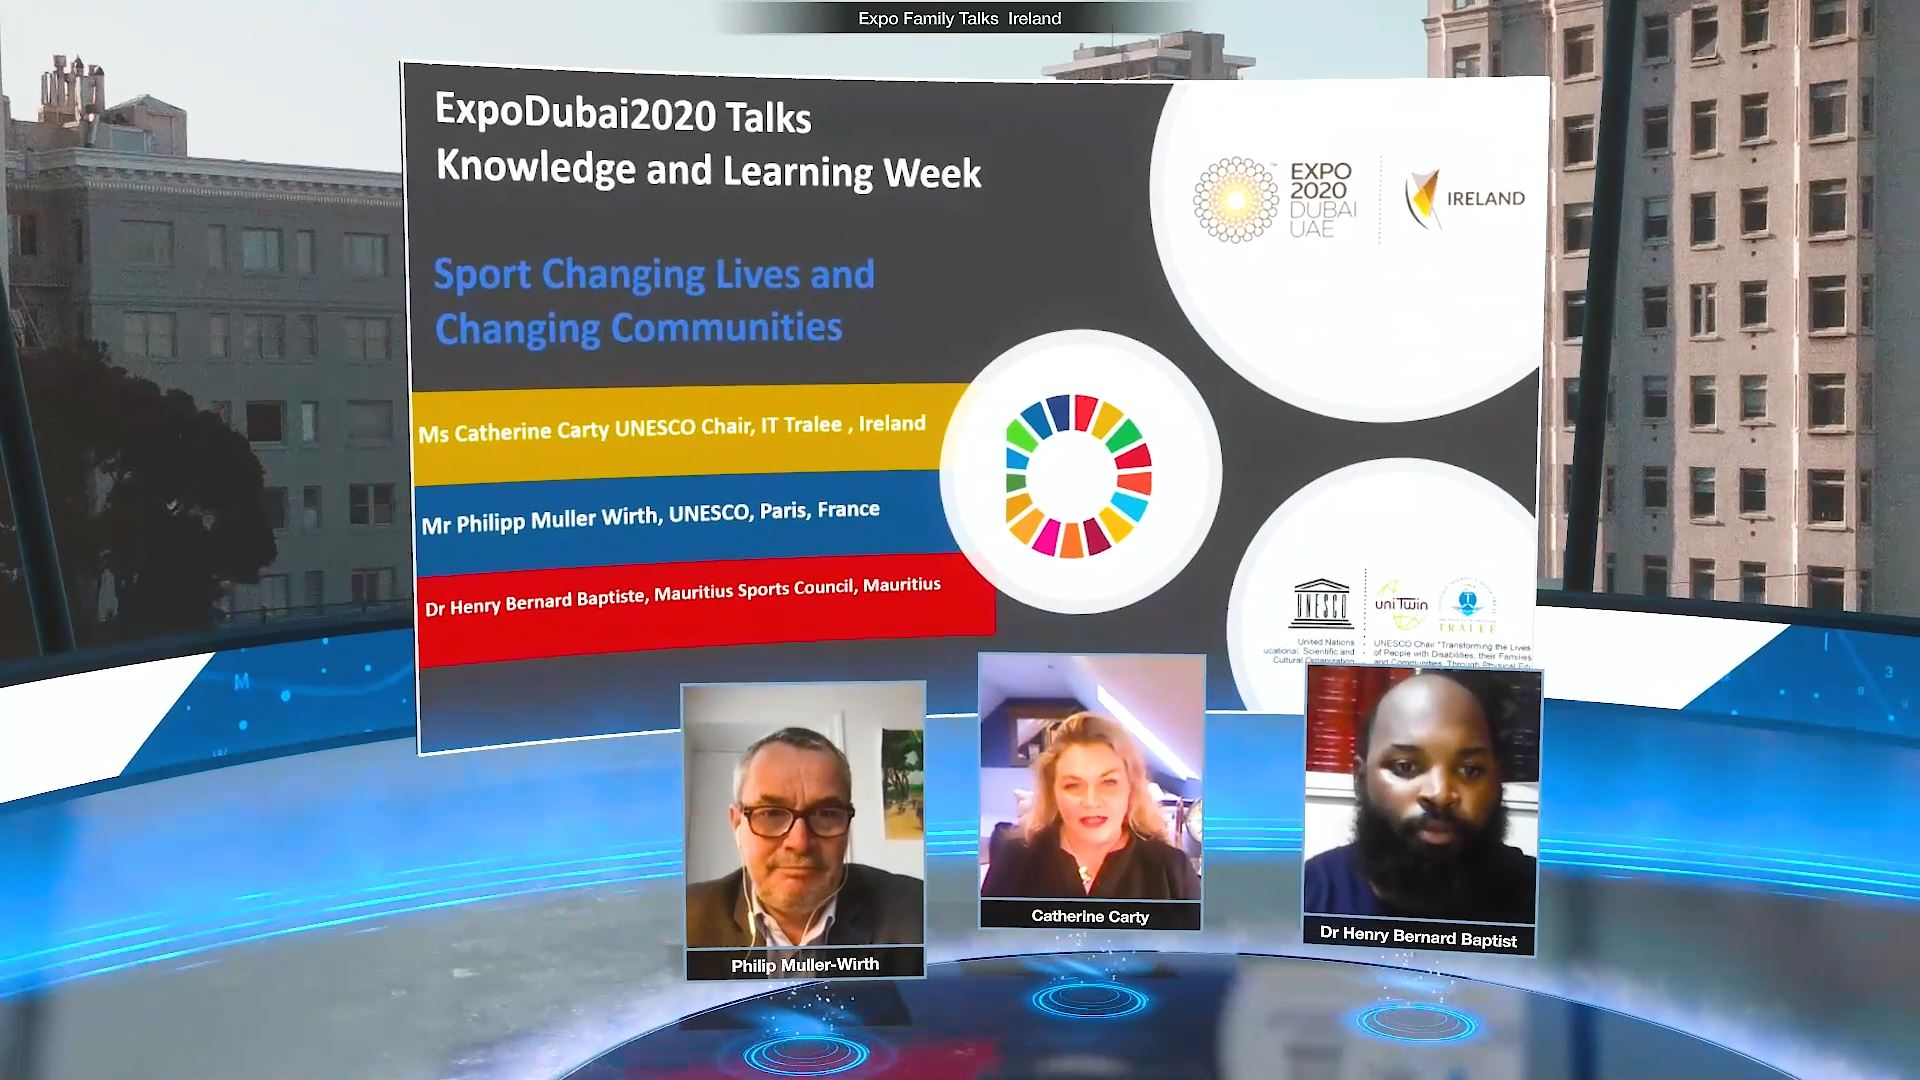 expo 2020 knowledge and learning week virtual event virtual speakers with screen